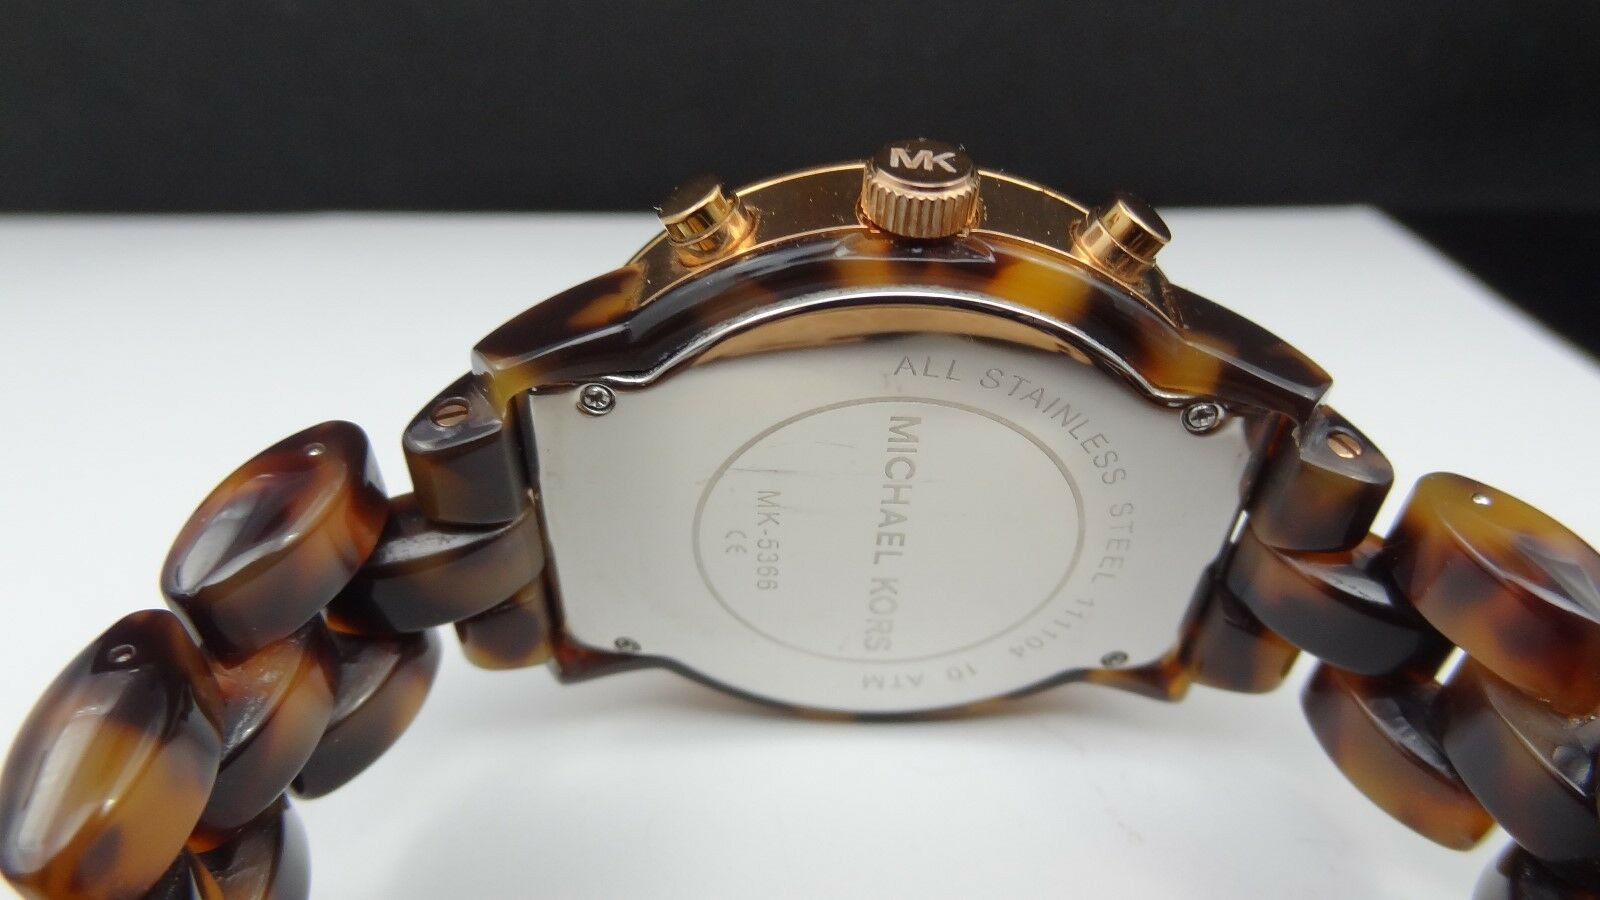 2ea0ce5746d5 Michael Kors Tortoise Show Stopper Glitz MK5366 Women s Watch for sale  online